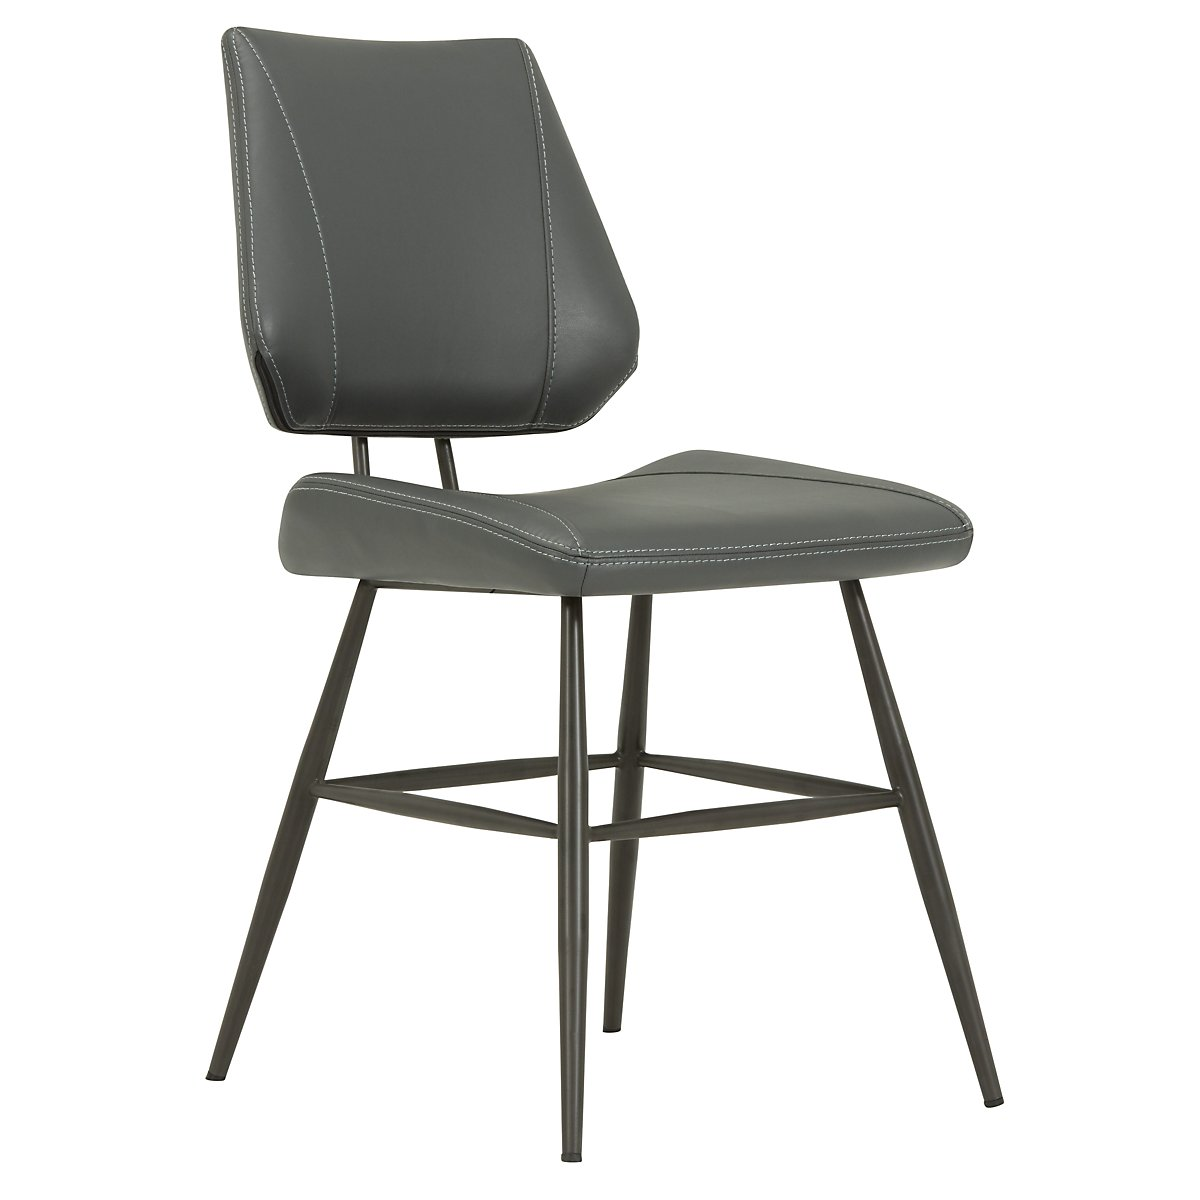 Gunnar Gray Upholstered Side Chair